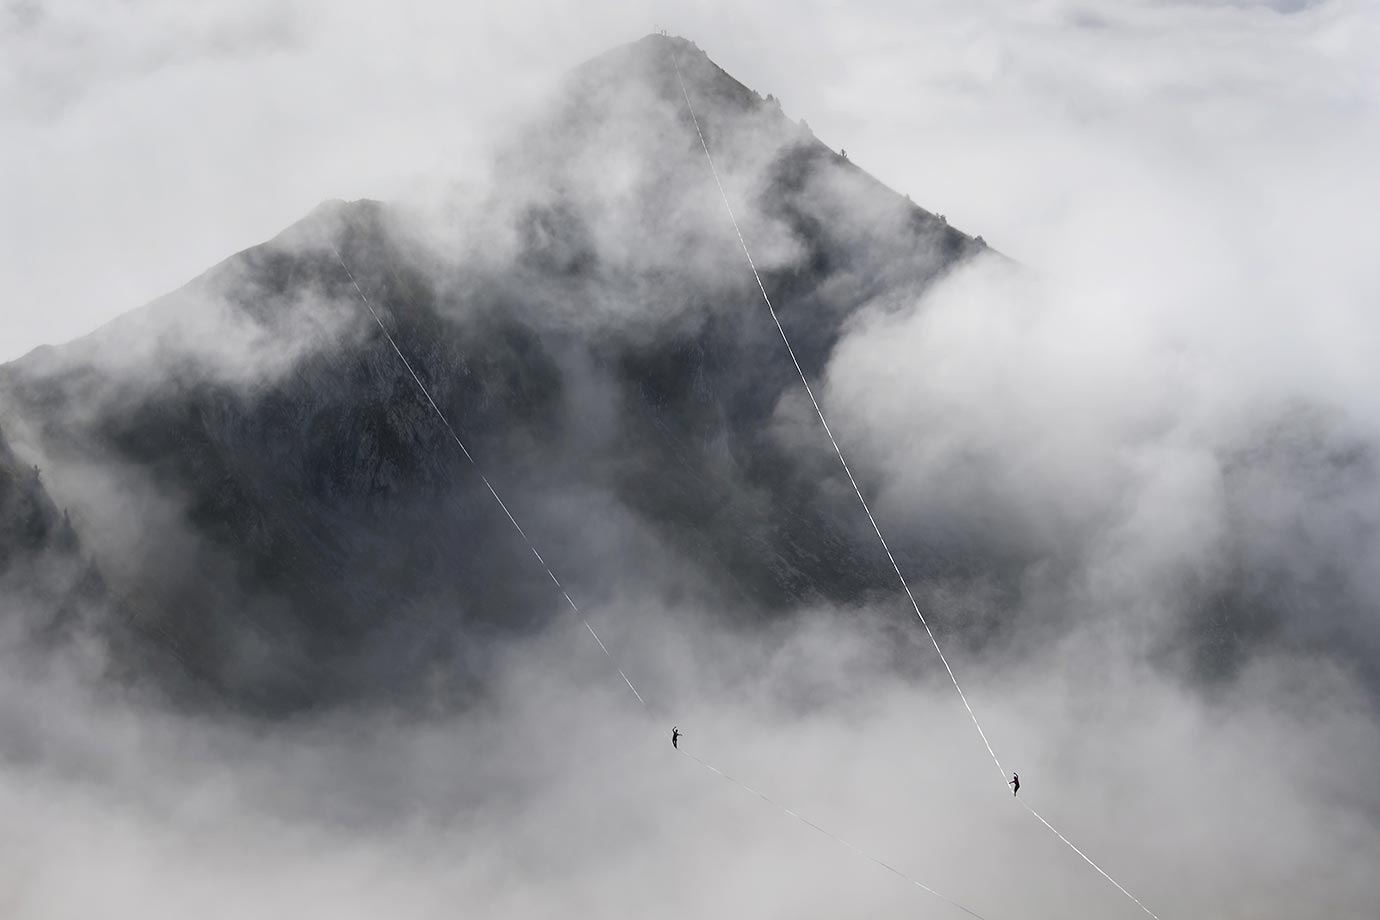 Two athetes compete in the fog during the Highline Extreme event.